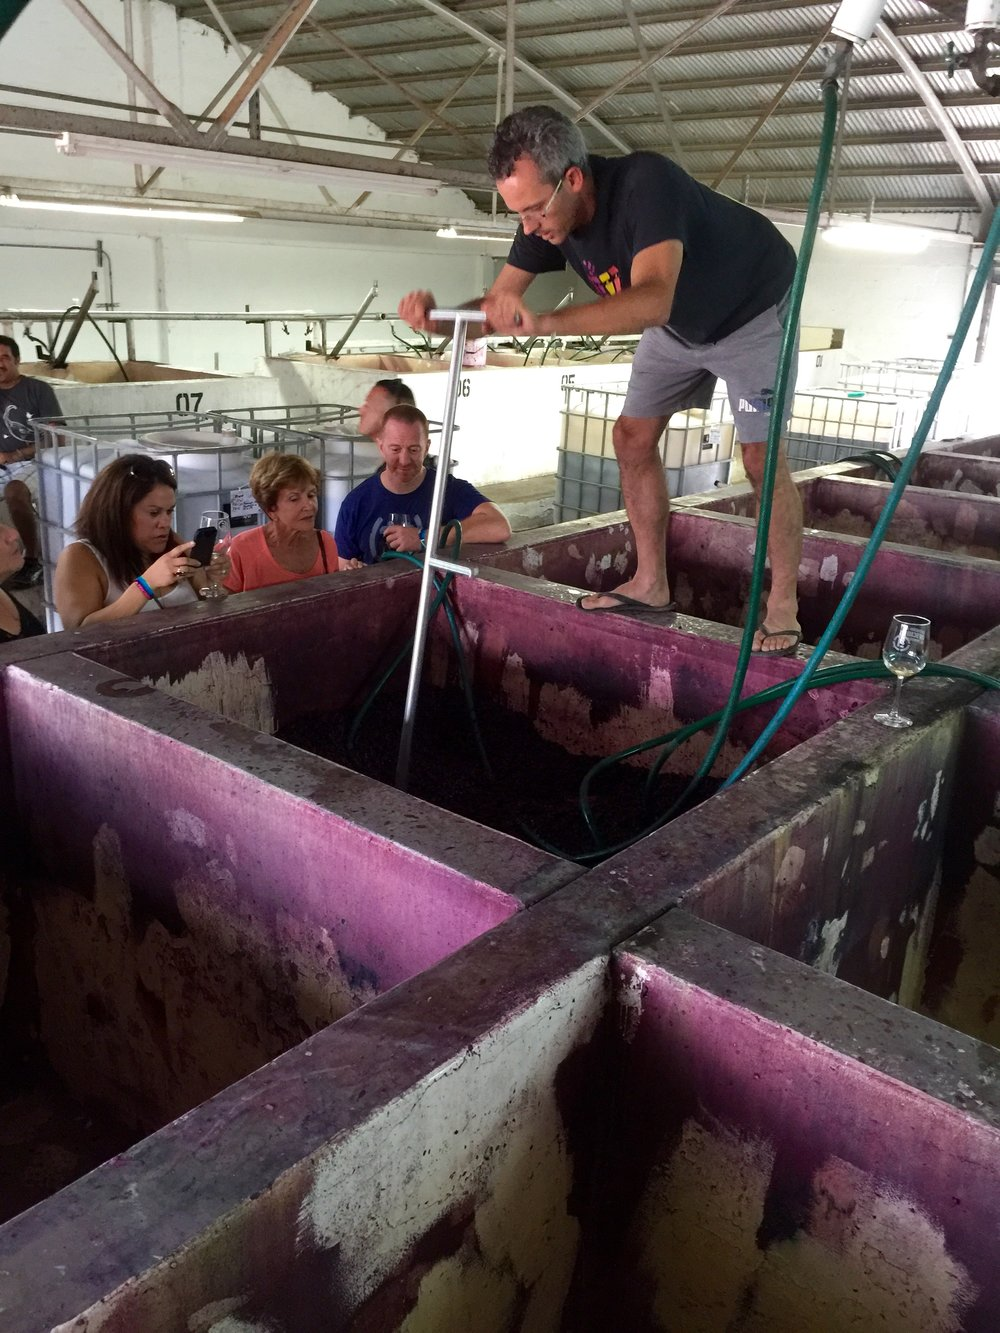 Thomas demonstrating a punch down in the concrete open-top fermenters at La Escuelita.